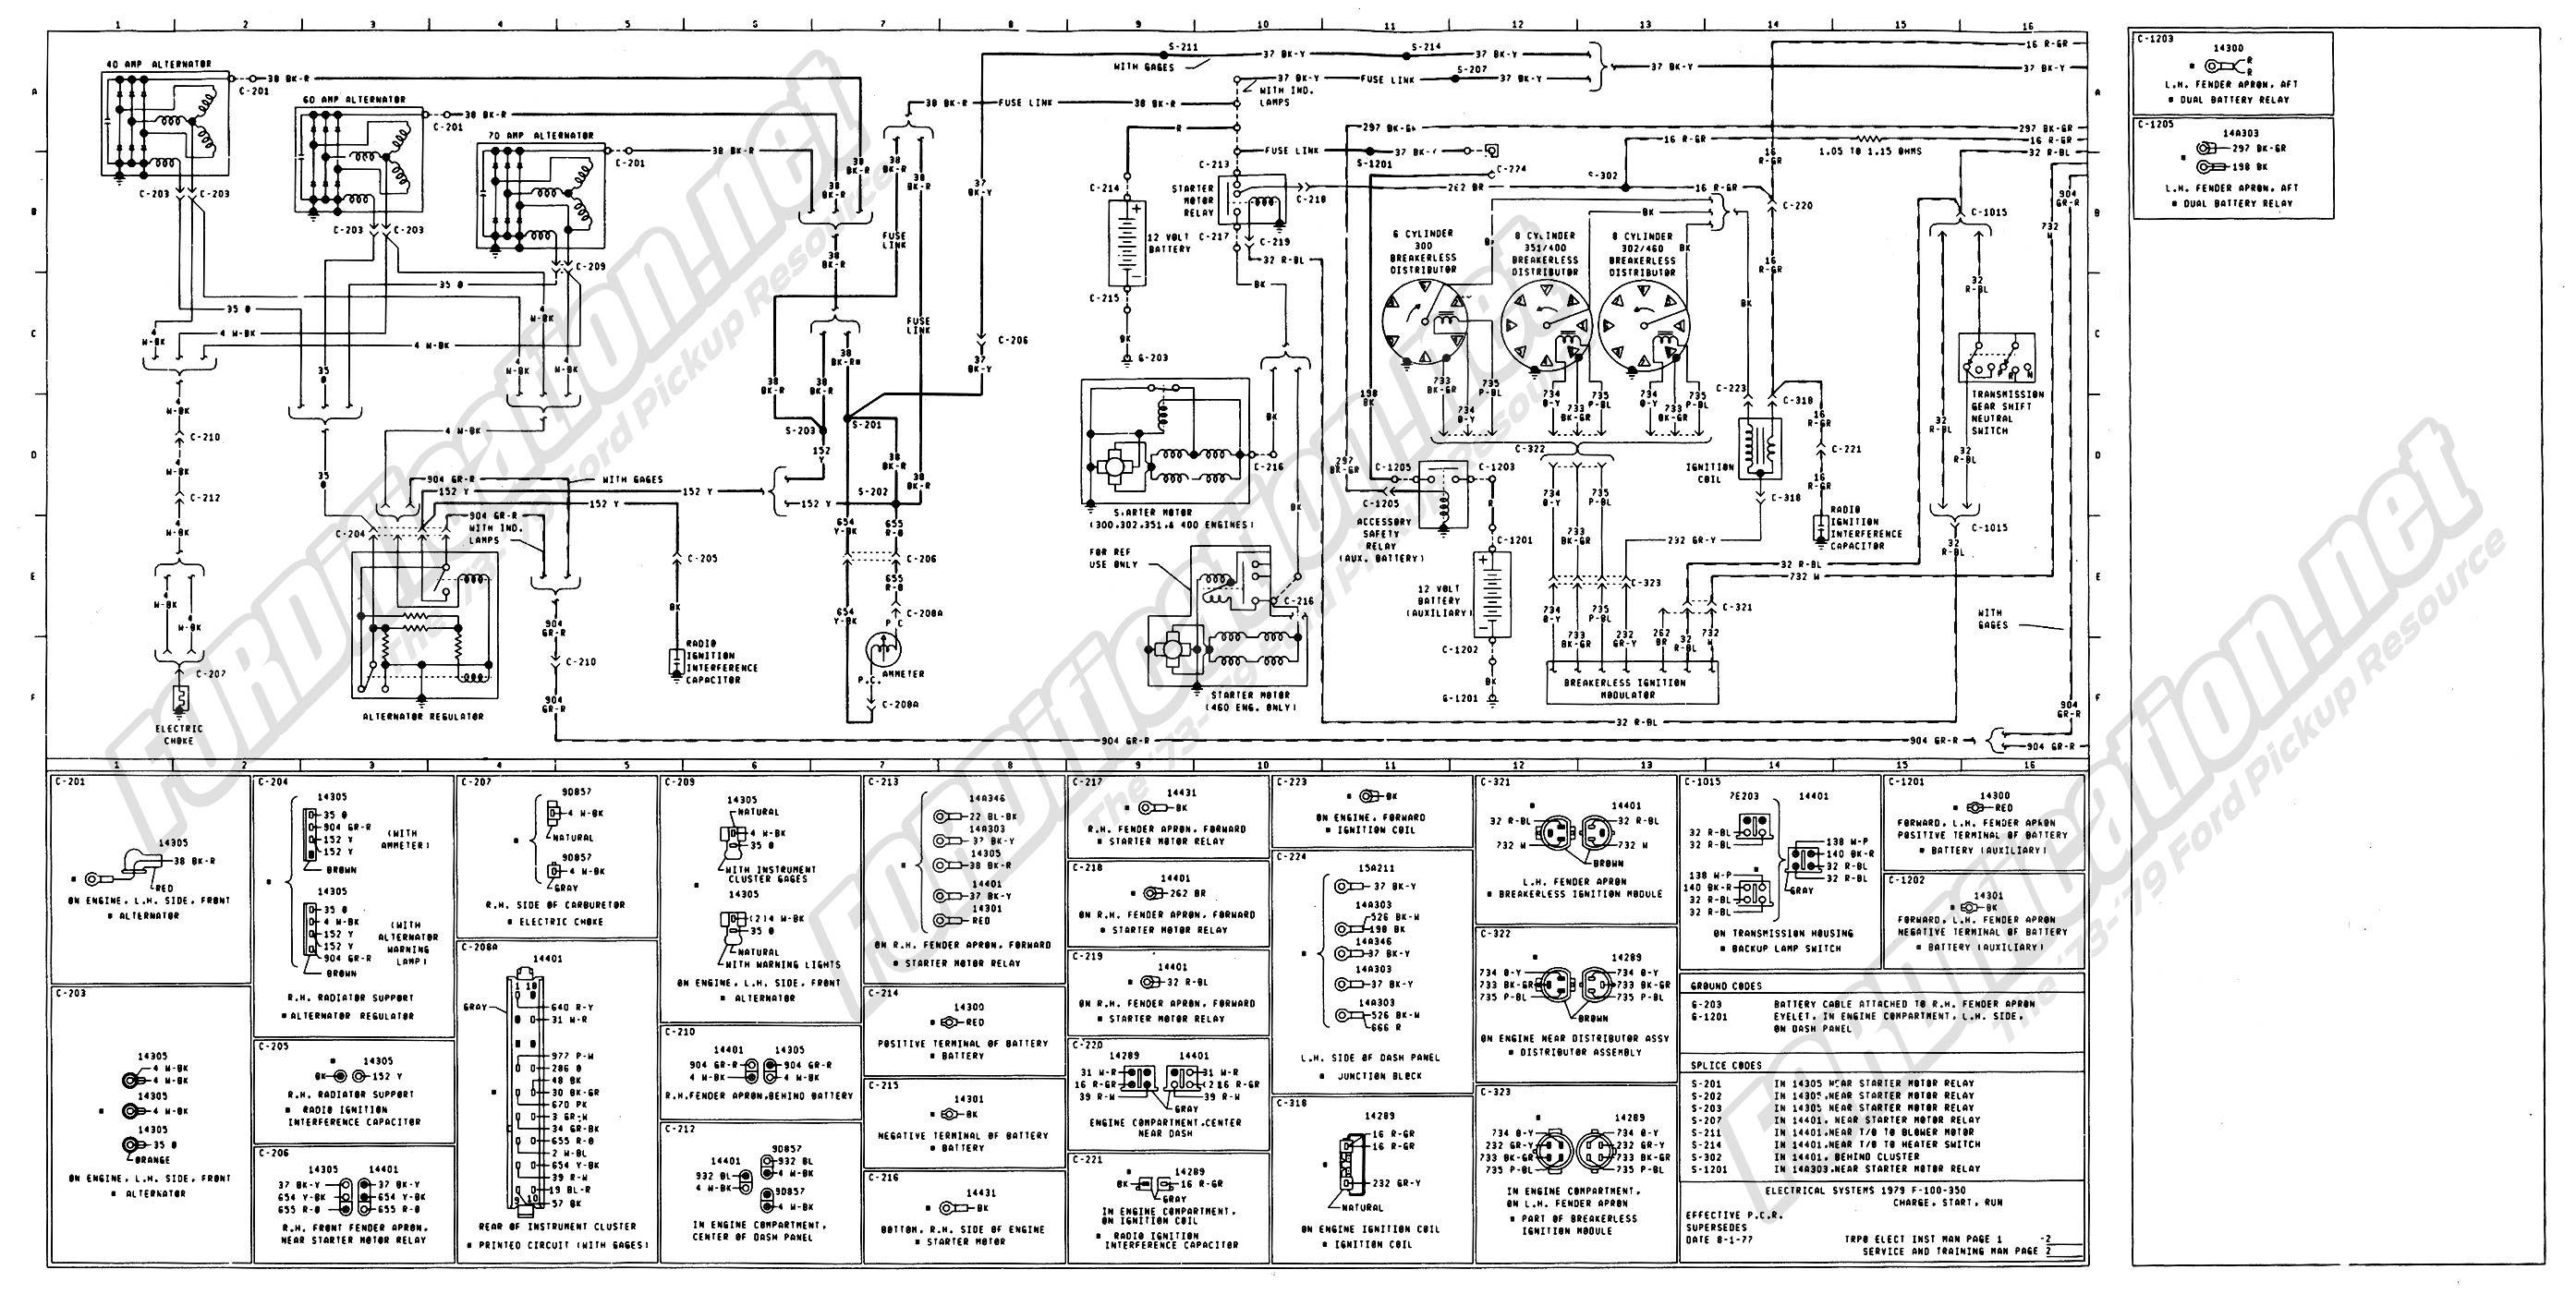 1973 1979 Ford Truck Wiring Diagrams & Schematics Fordification Net Ford  Ignition Wiring Diagram 79 Ford Wiring Diagram